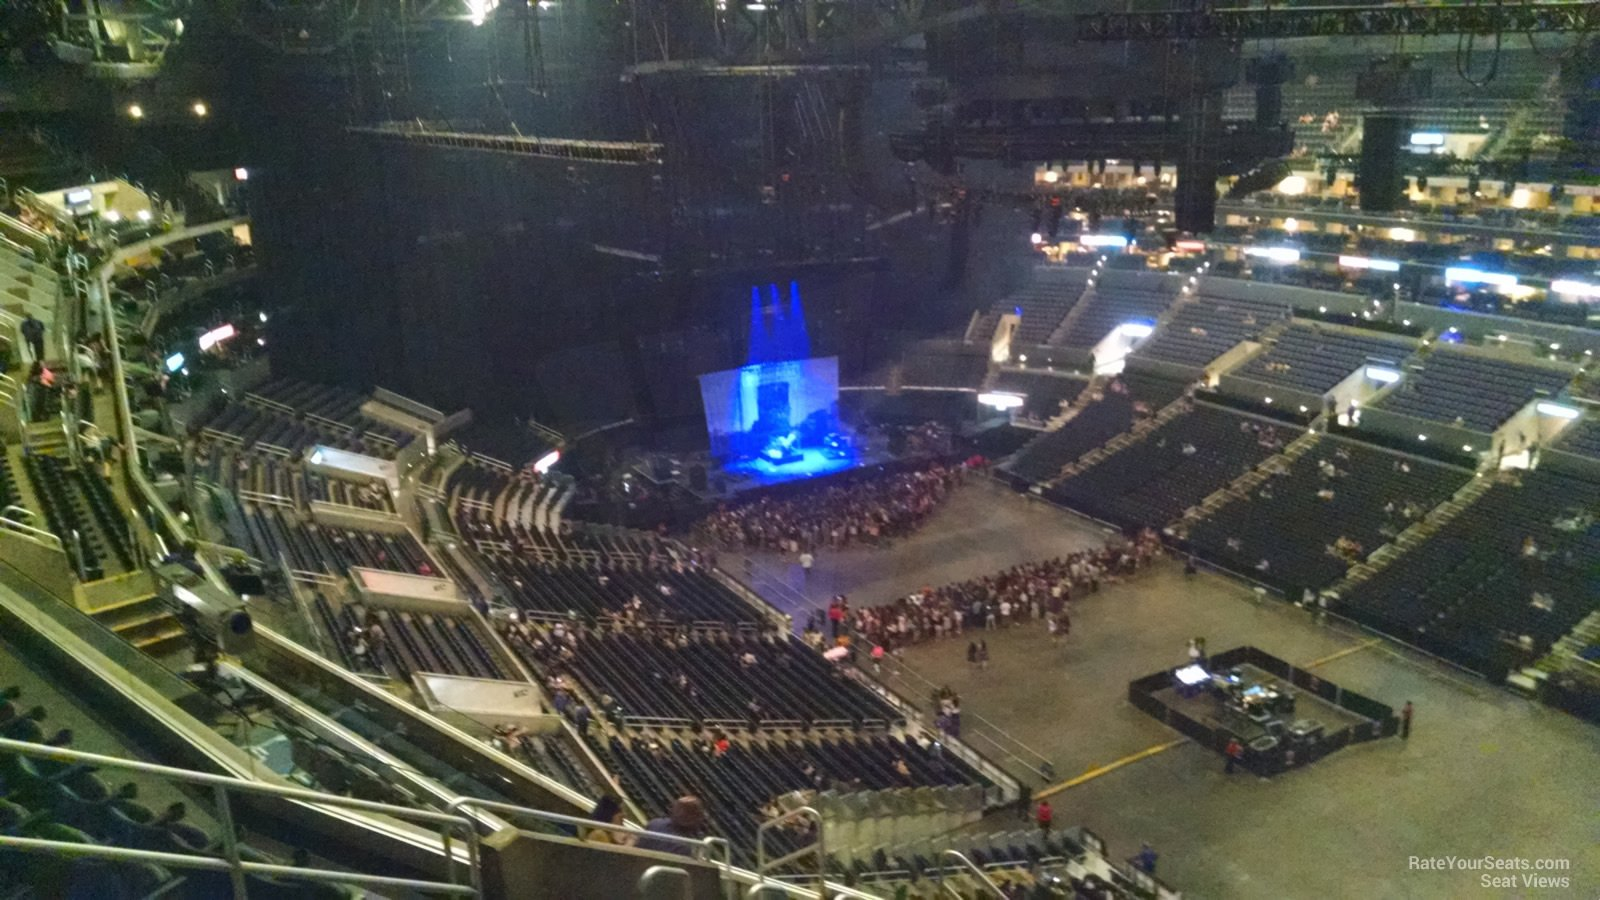 staples center section 314 concert seating - rateyourseats